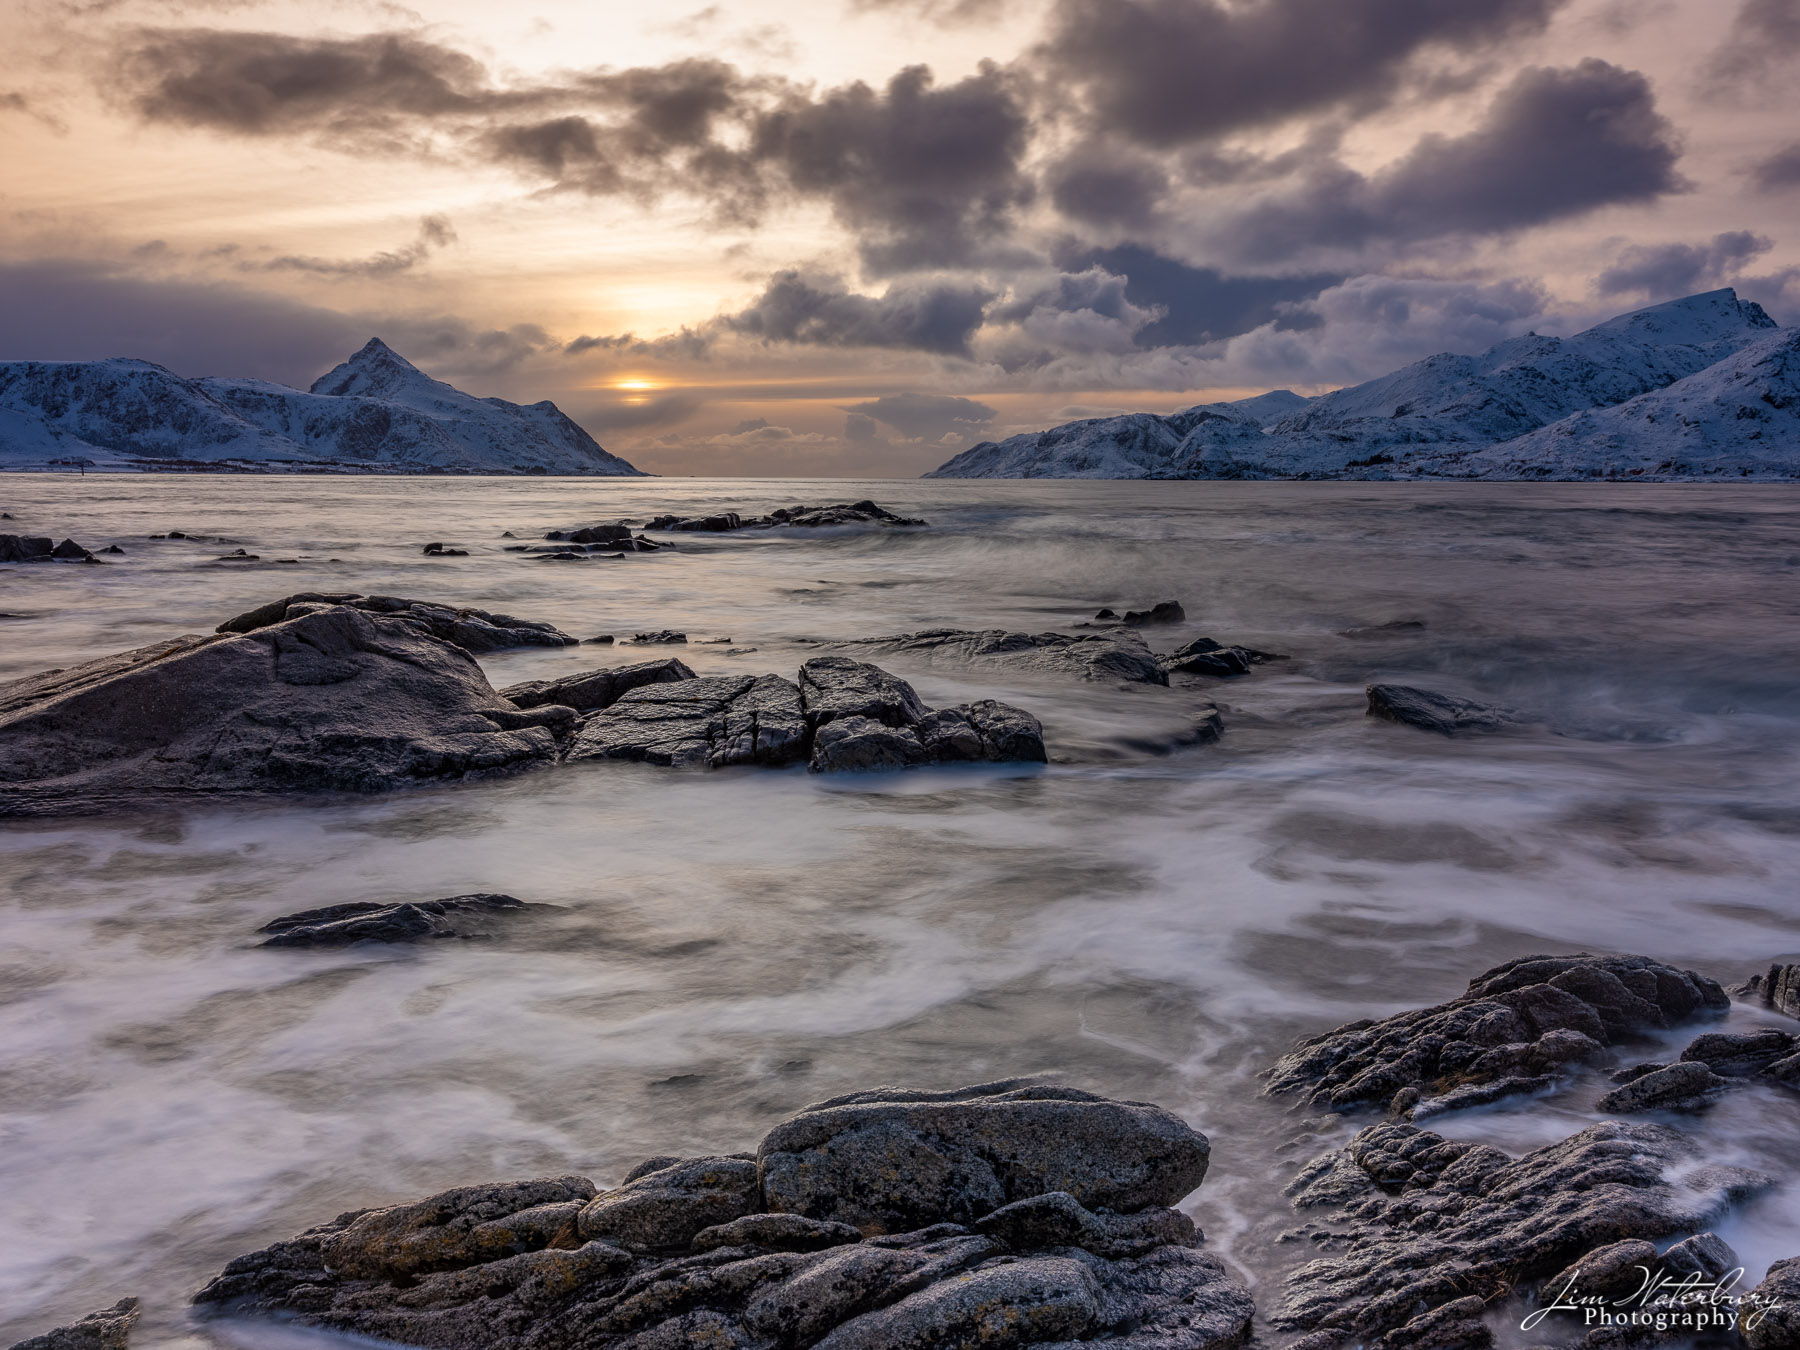 Layers of foam, rock, and clouds form a moody, late afternoon winter seascape across a fjord near Leknes in the Lofoten Islands...